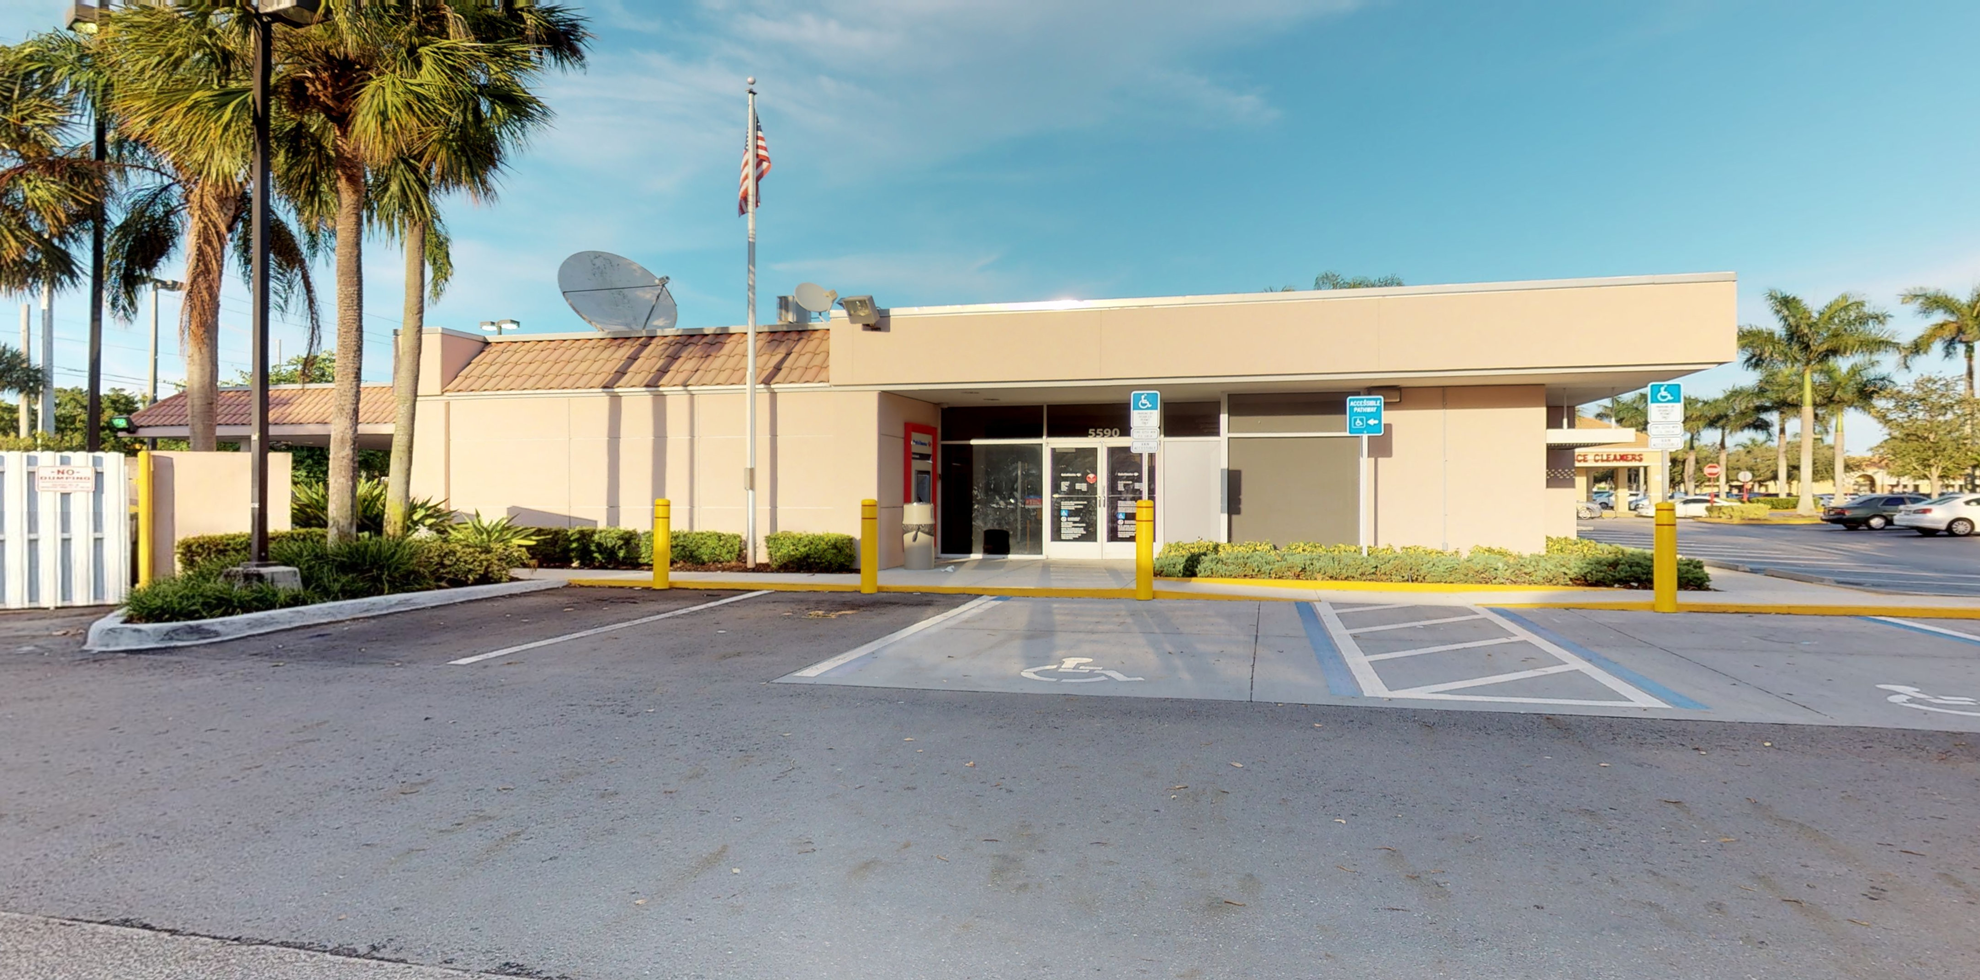 Bank of America financial center with drive-thru ATM | 5590 W Sample Rd, Margate, FL 33073